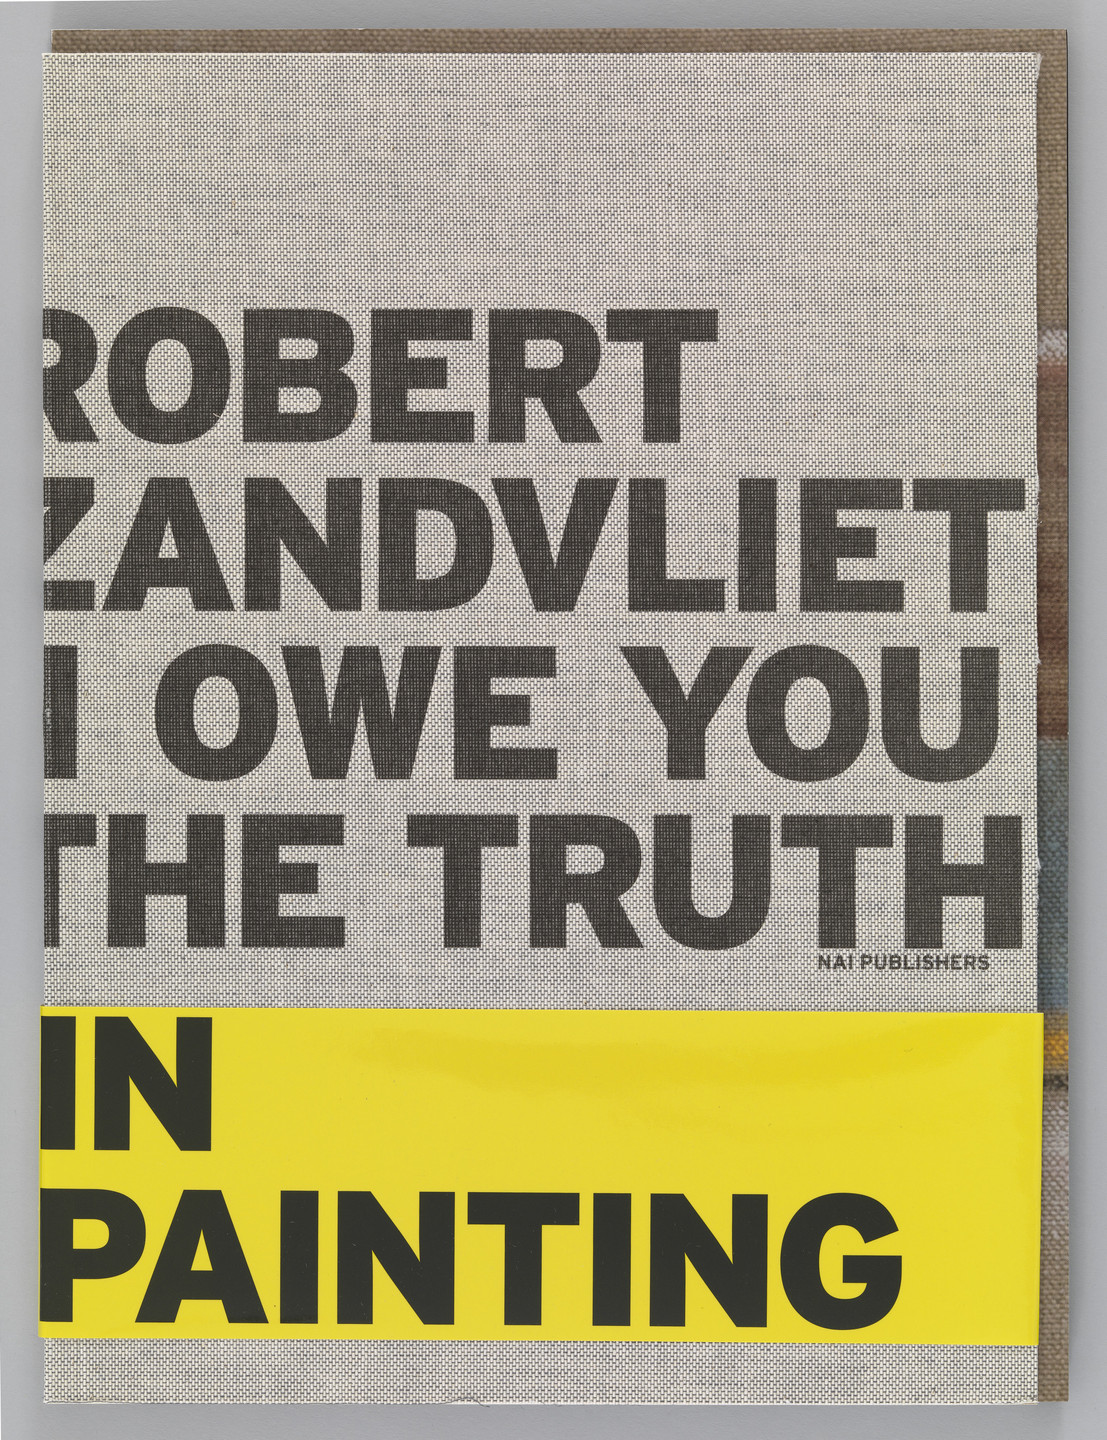 Irma Boom. Robert Zandvliet: I Owe You the Truth in Painting 1650-2012. 2012